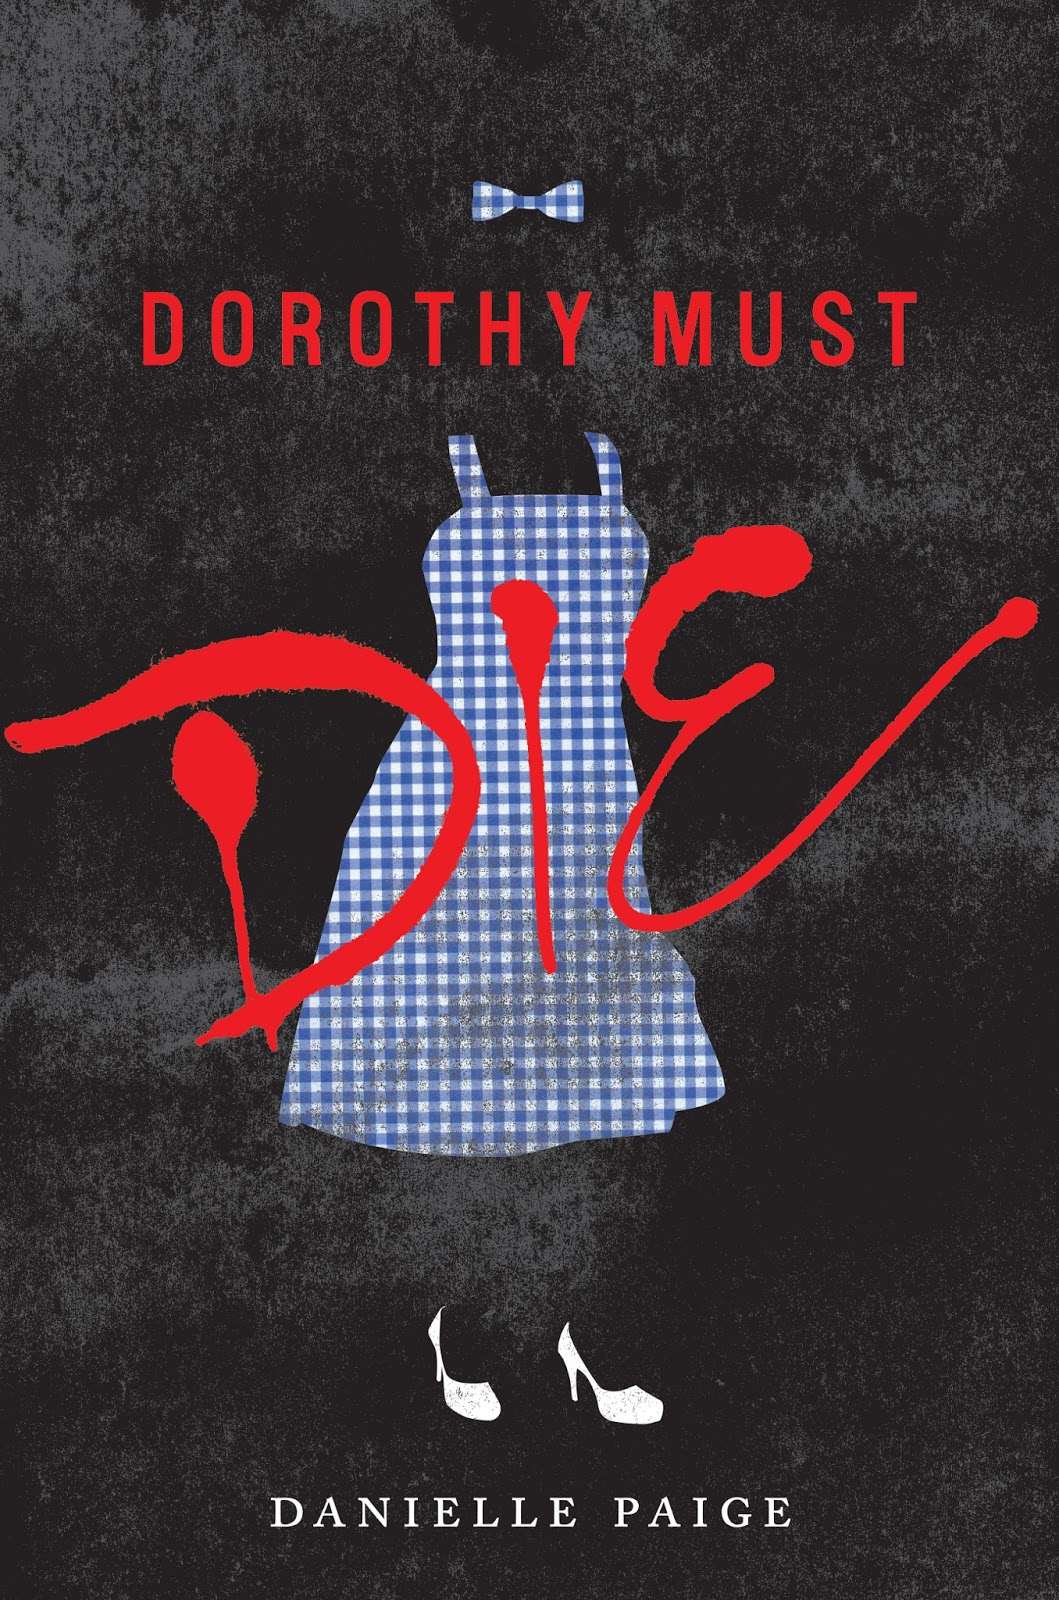 http://nothingbutn9erz.blogspot.co.at/2015/01/dorothy-must-die-danielle-paige.html